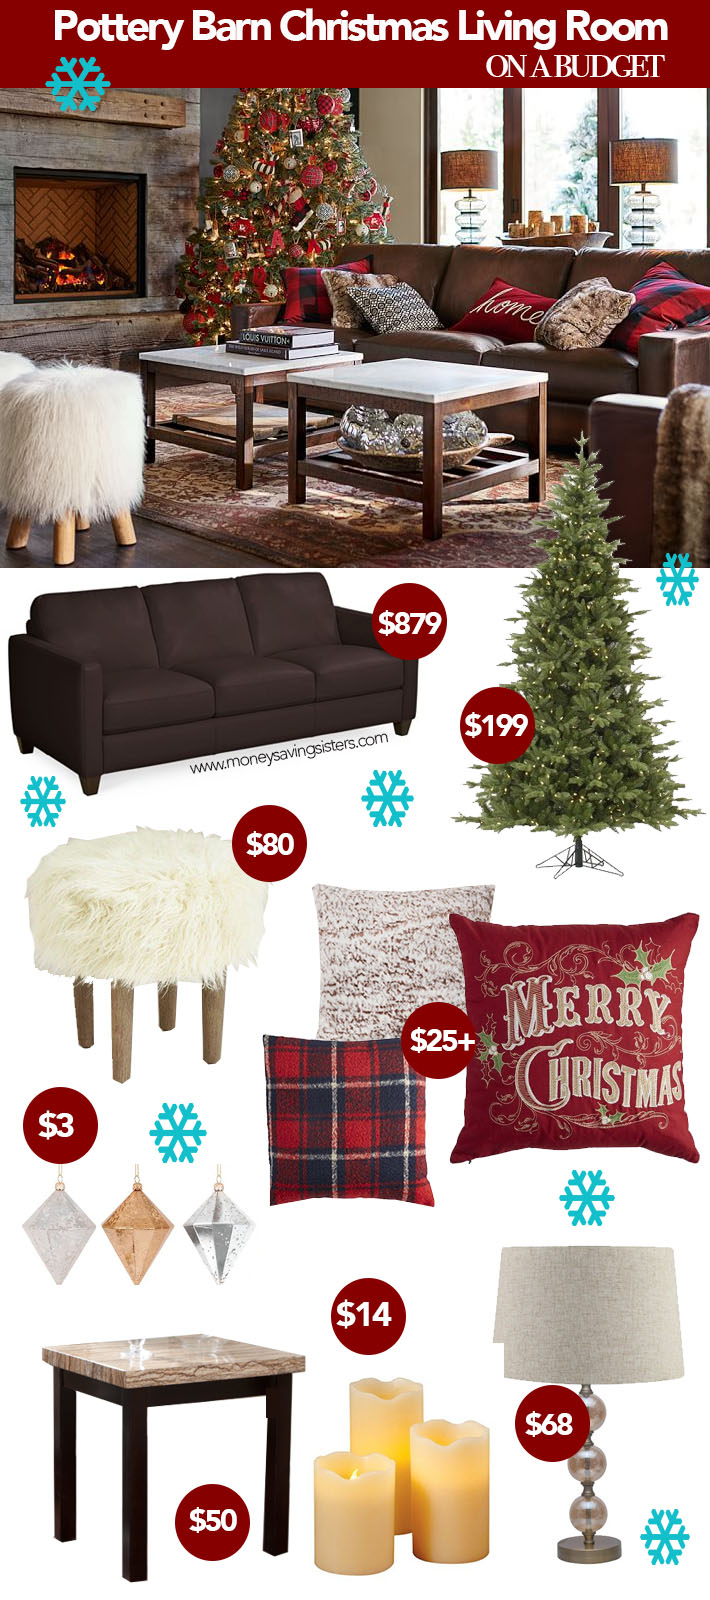 Pottery Barn Living Room Colors Pottery Barn Christmas Living Room Makeover On A Budget Money